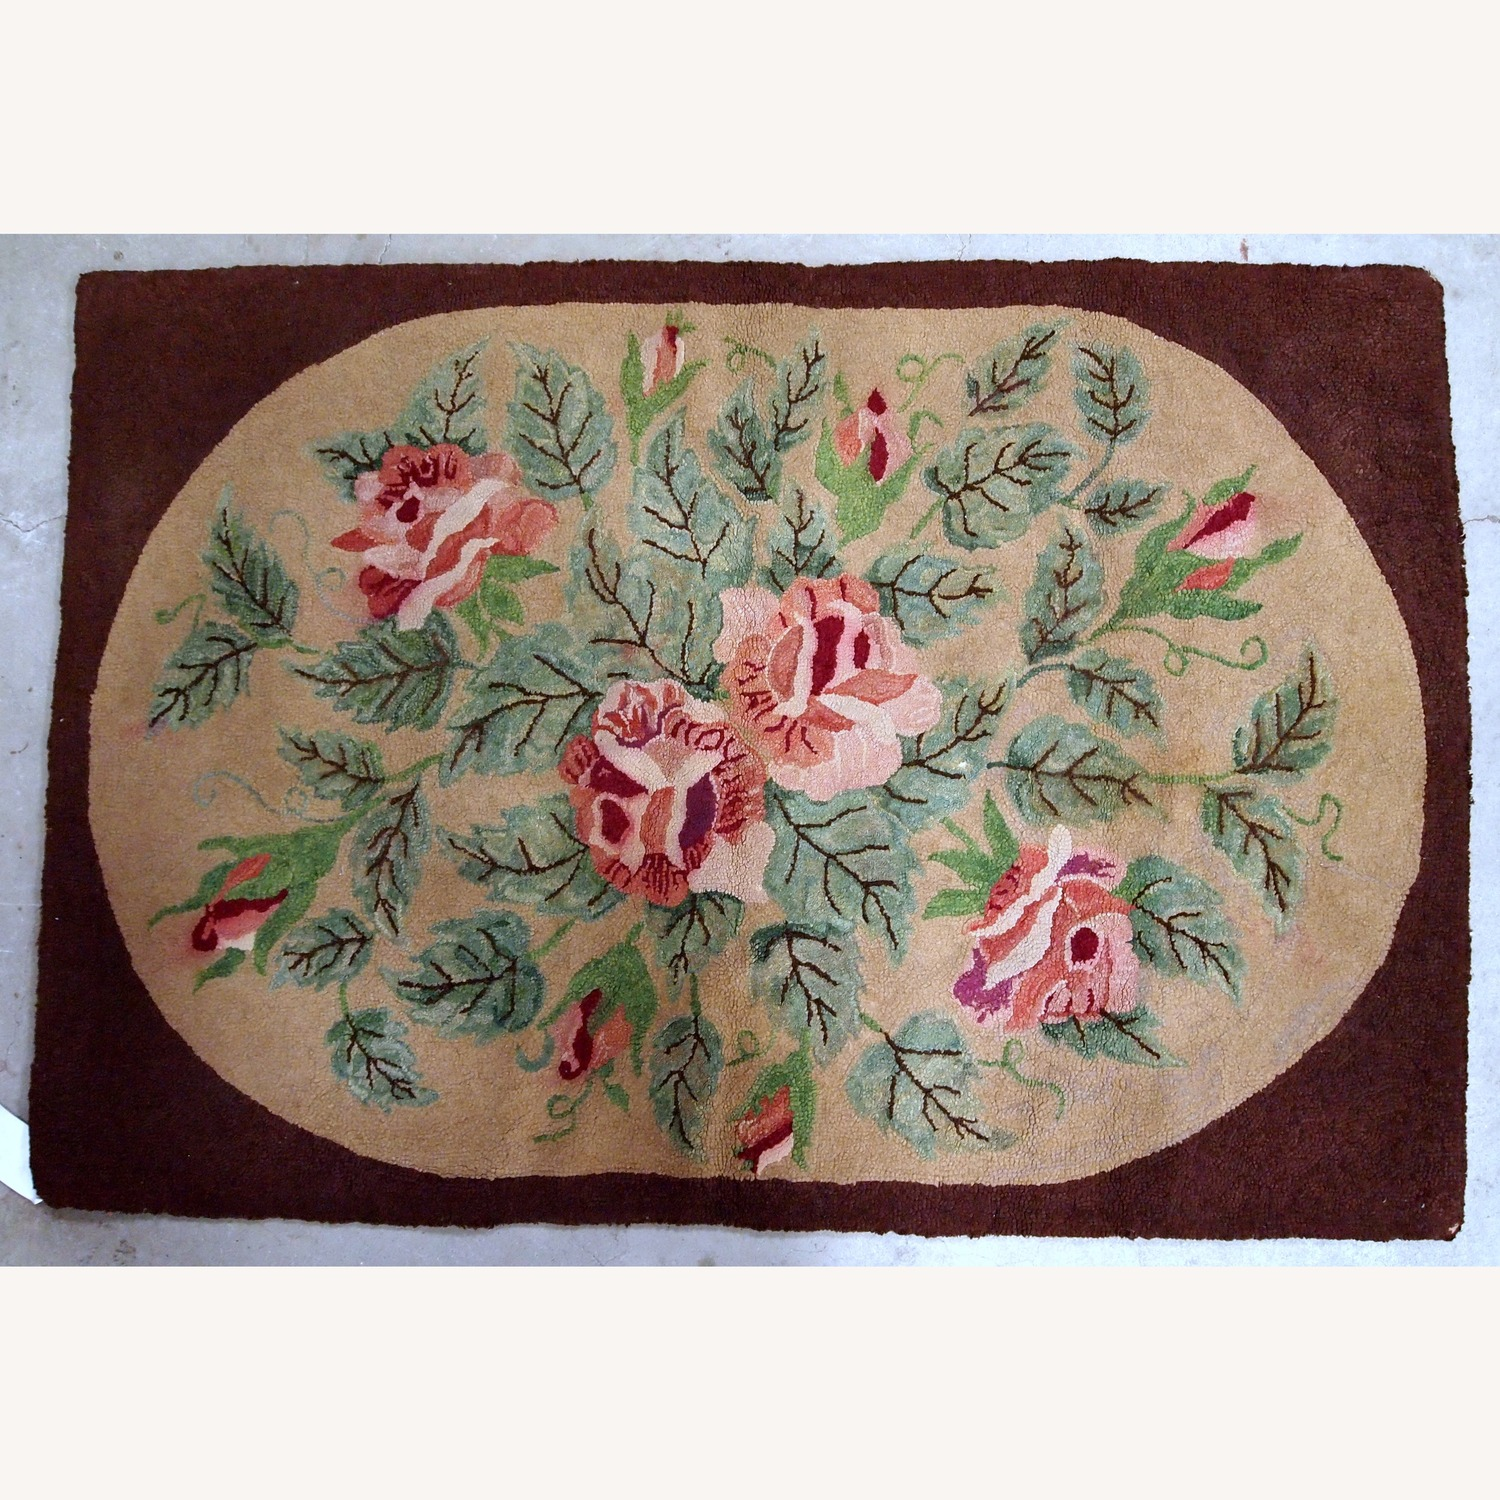 Handmade Antique American Hooked Rug - image-7